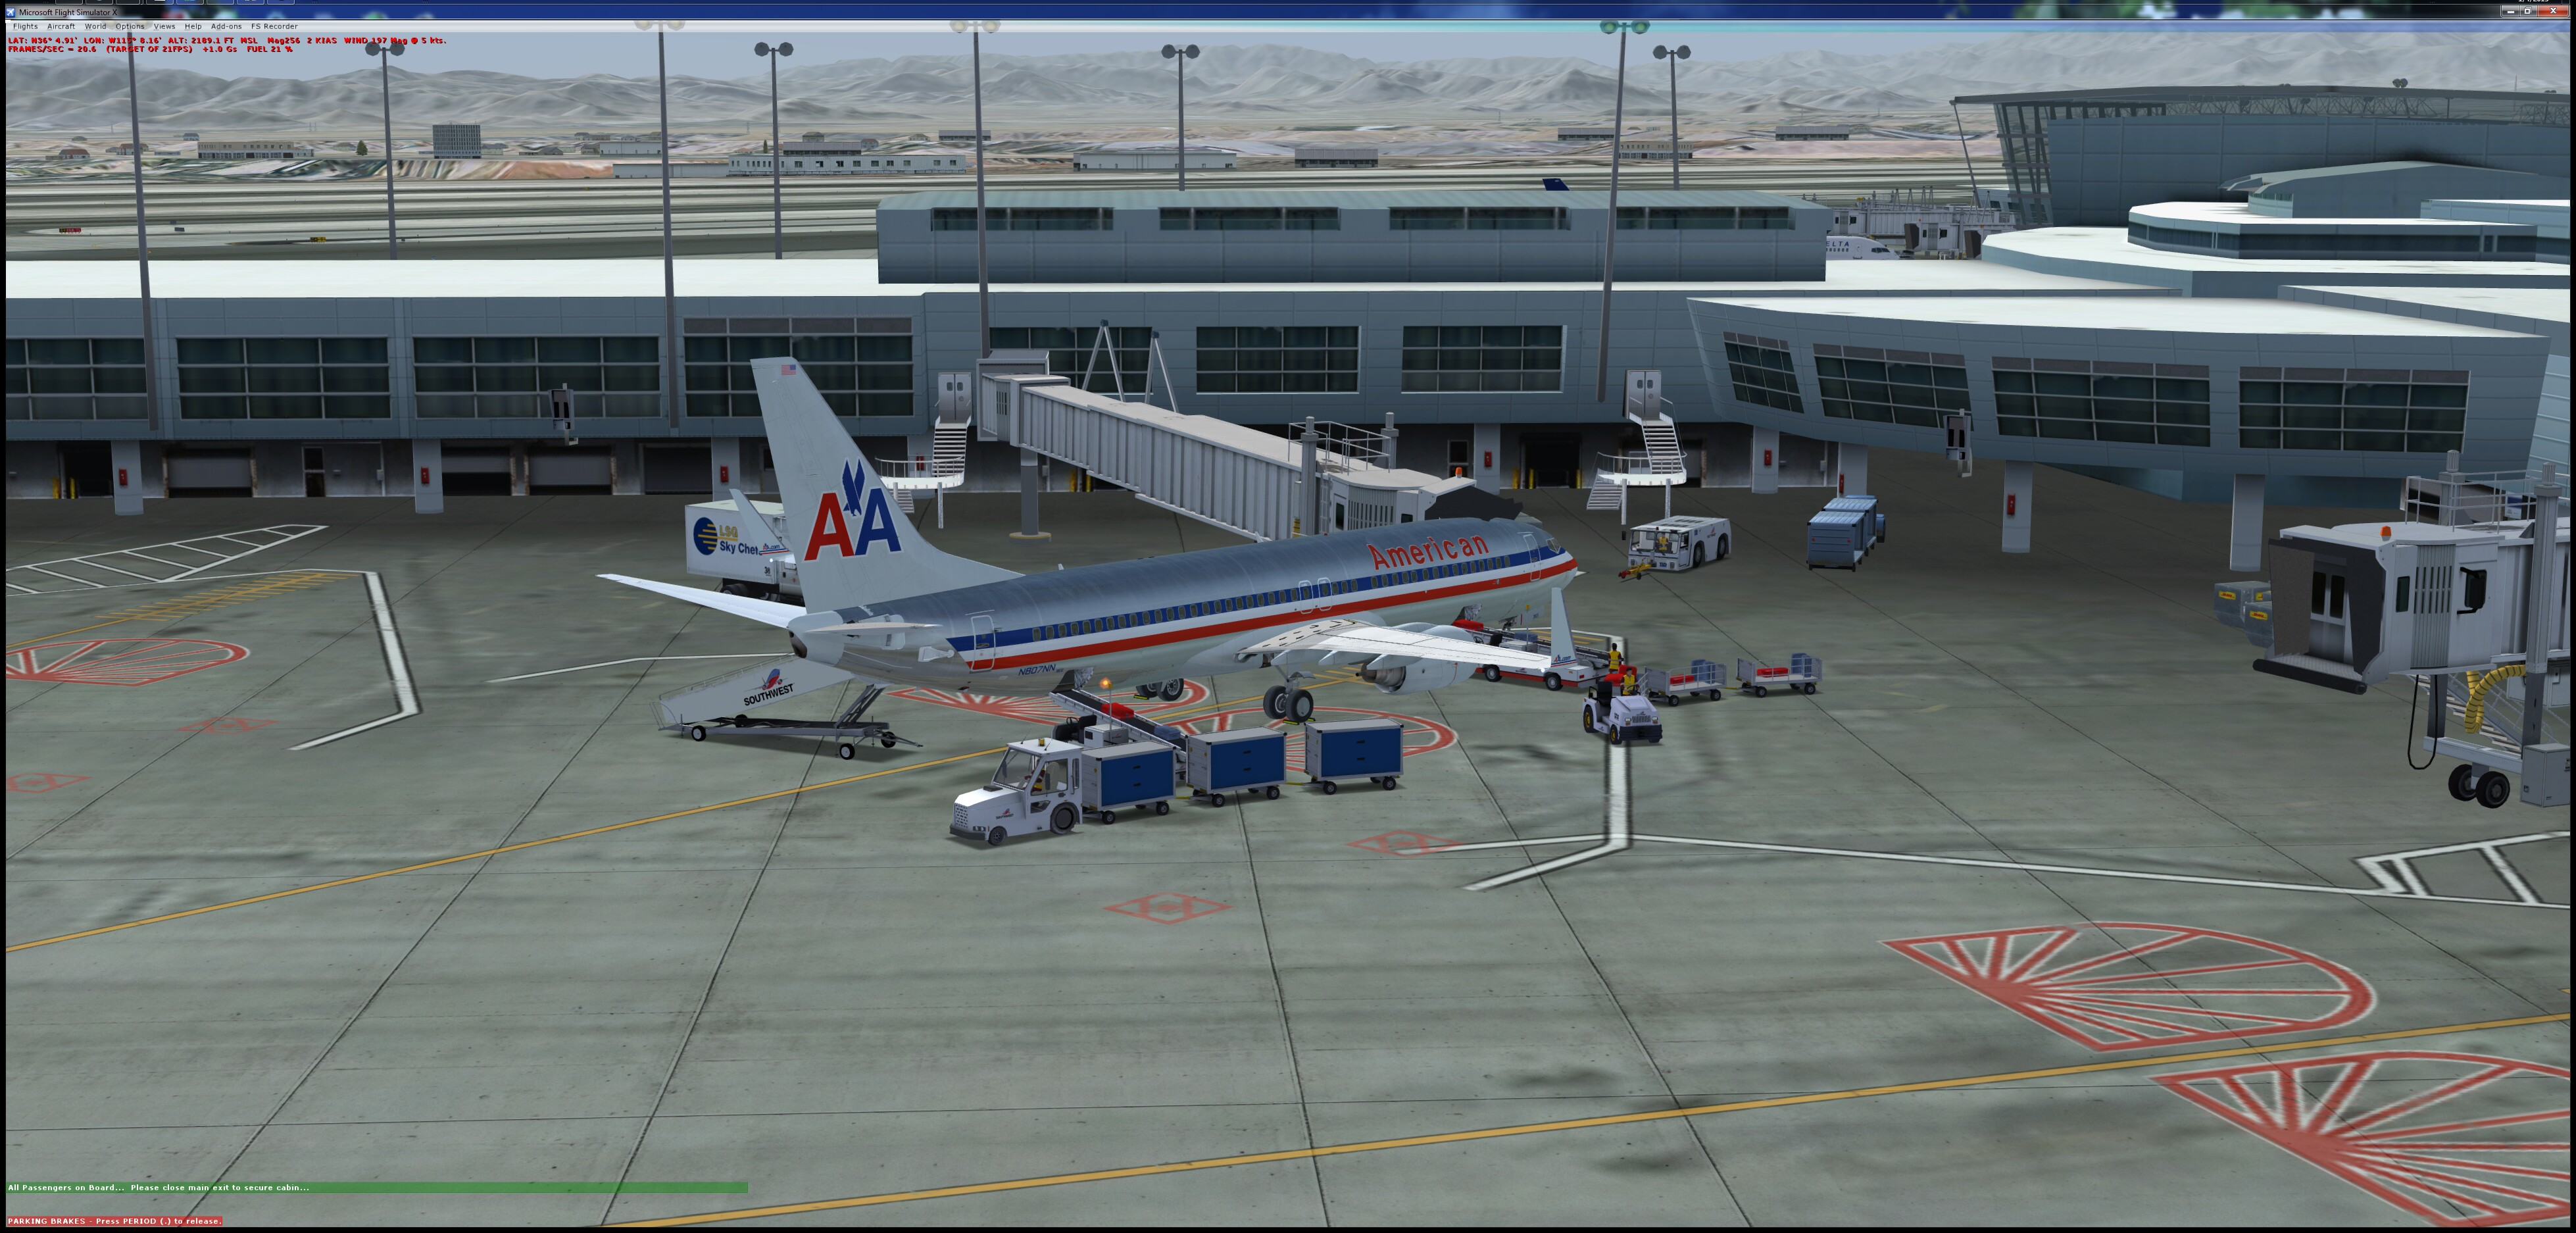 ScreenshotsKLAX-KLAS-26.jpg